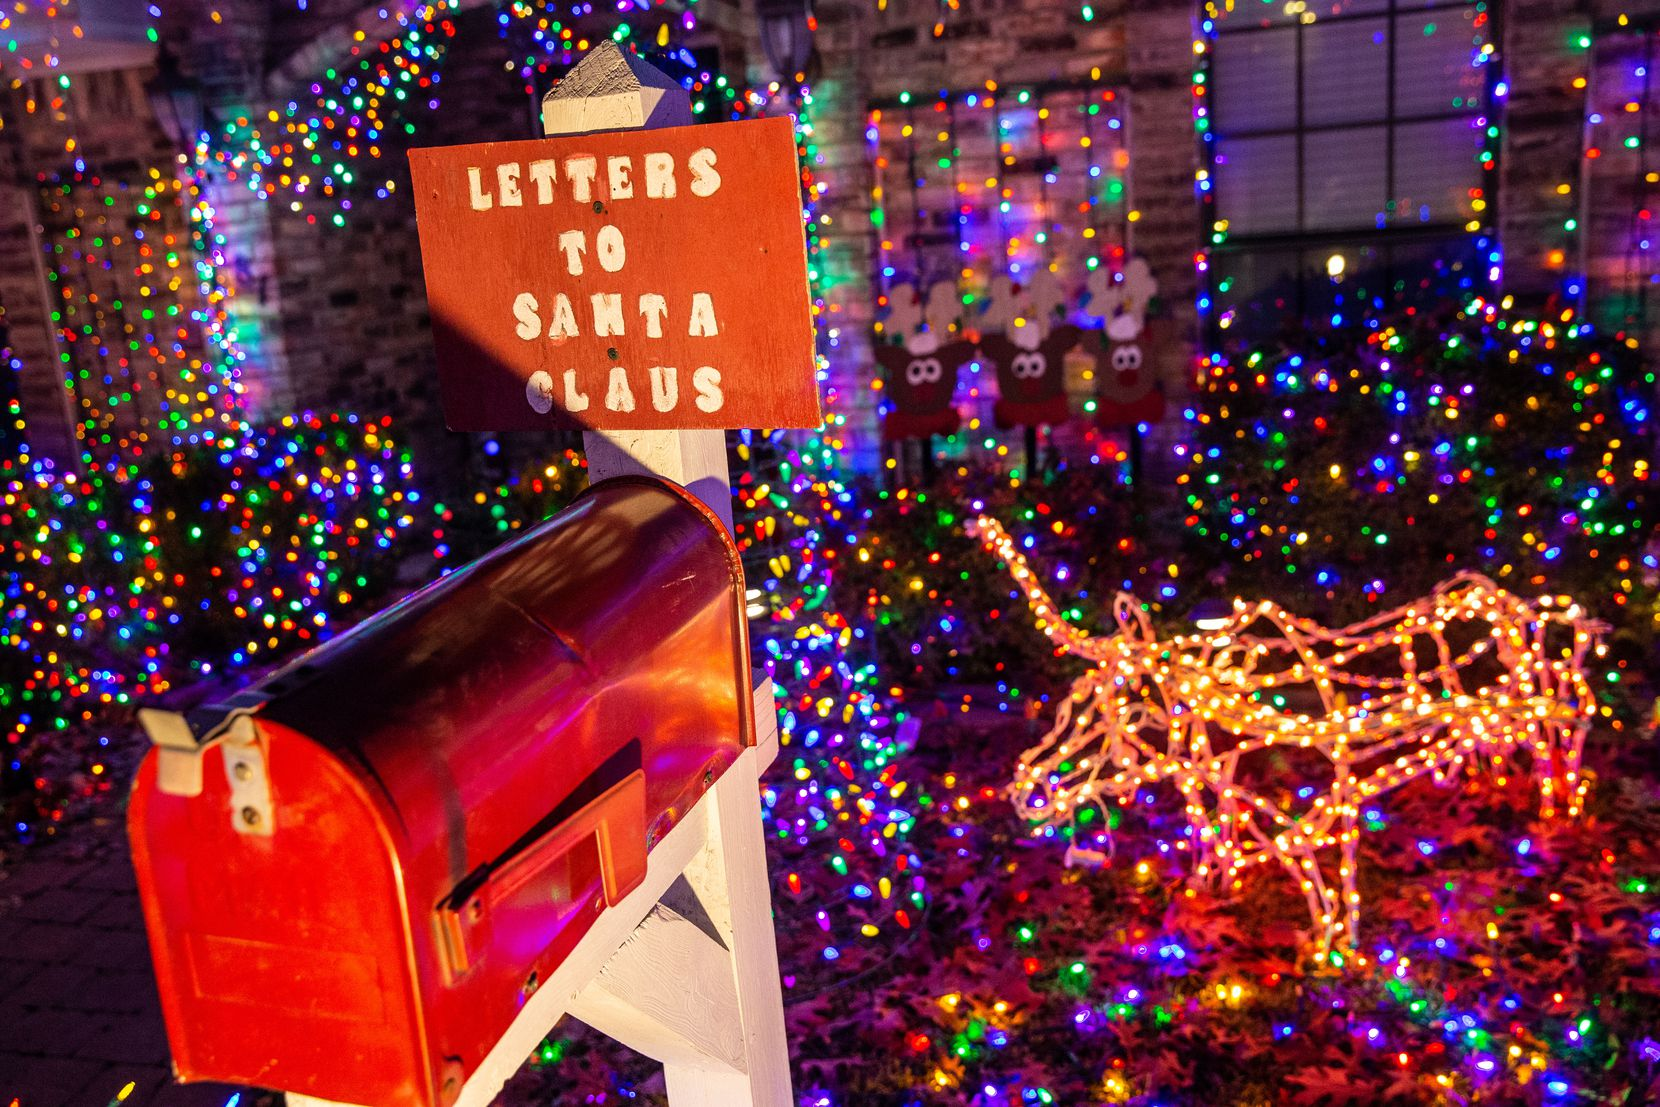 """Jim and Linda Shultz's """"Letters to Santa"""" mailbox sits near their University of Texas Longhorn, just one of many characters in their holiday display."""